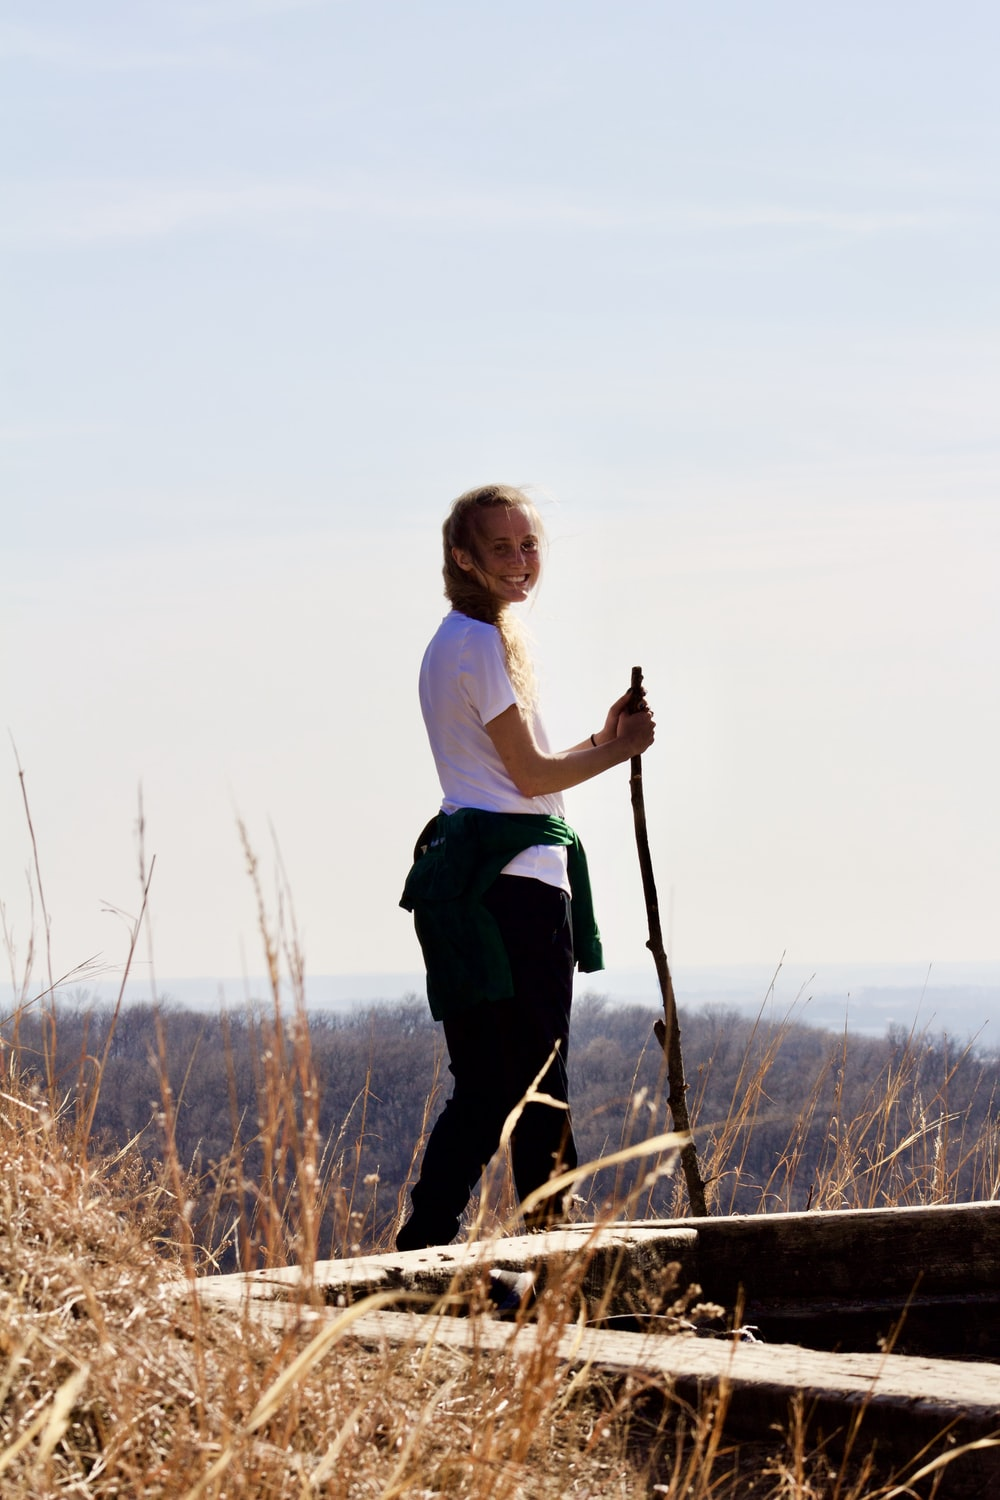 woman in white shirt and black pants holding stick standing on brown grass field during daytime